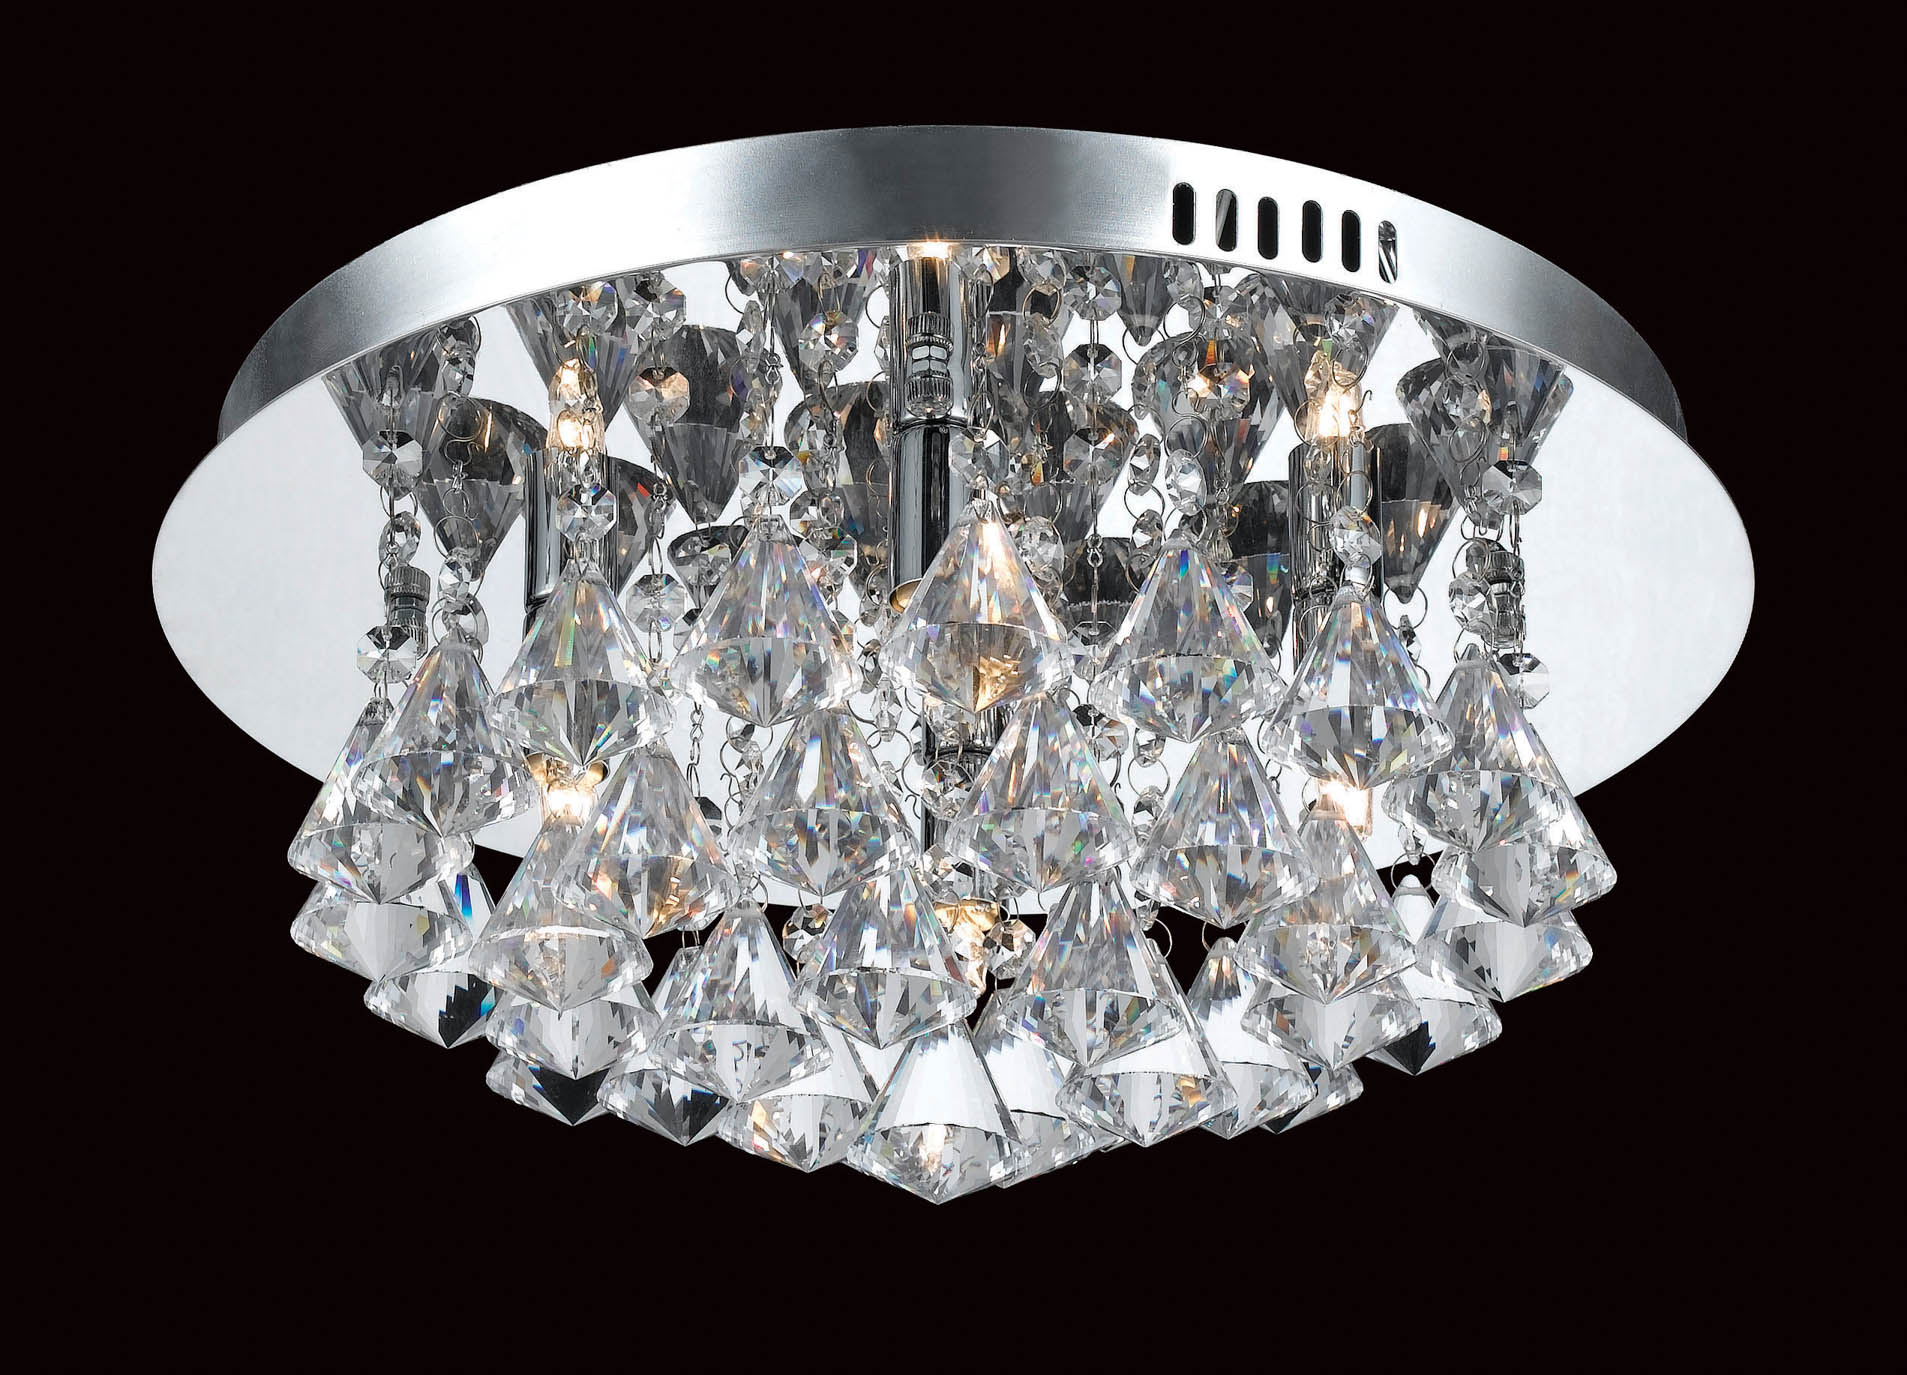 Impex CFH011025/04/CH Parma 4 light Low Ceiling Fitting, Chrome